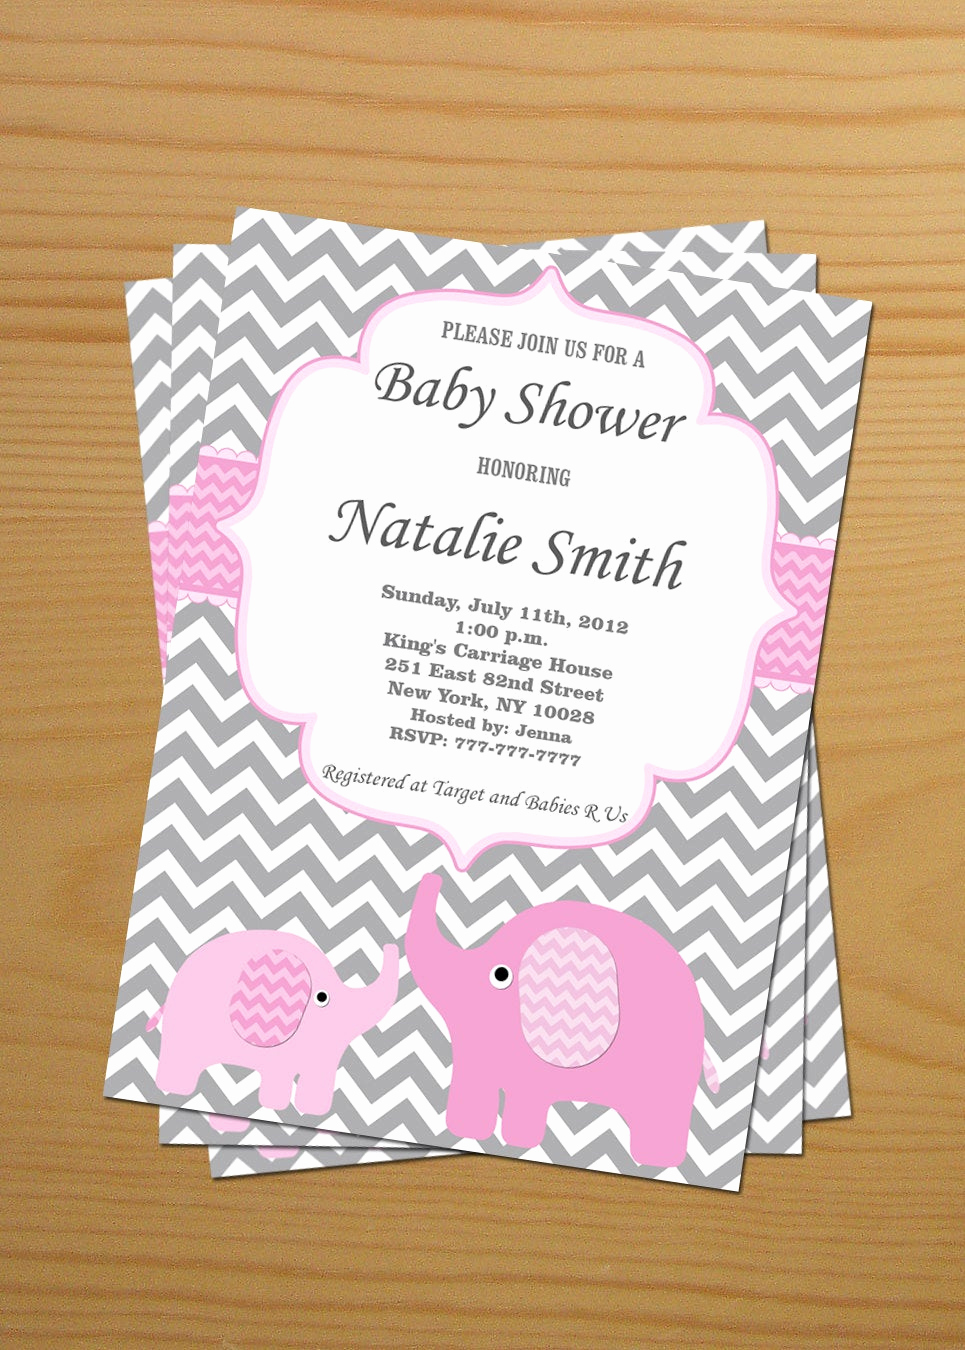 Baby Shower Invitation for Girl Fresh Baby Shower Invitation Elephant Baby Shower Invitation Girl